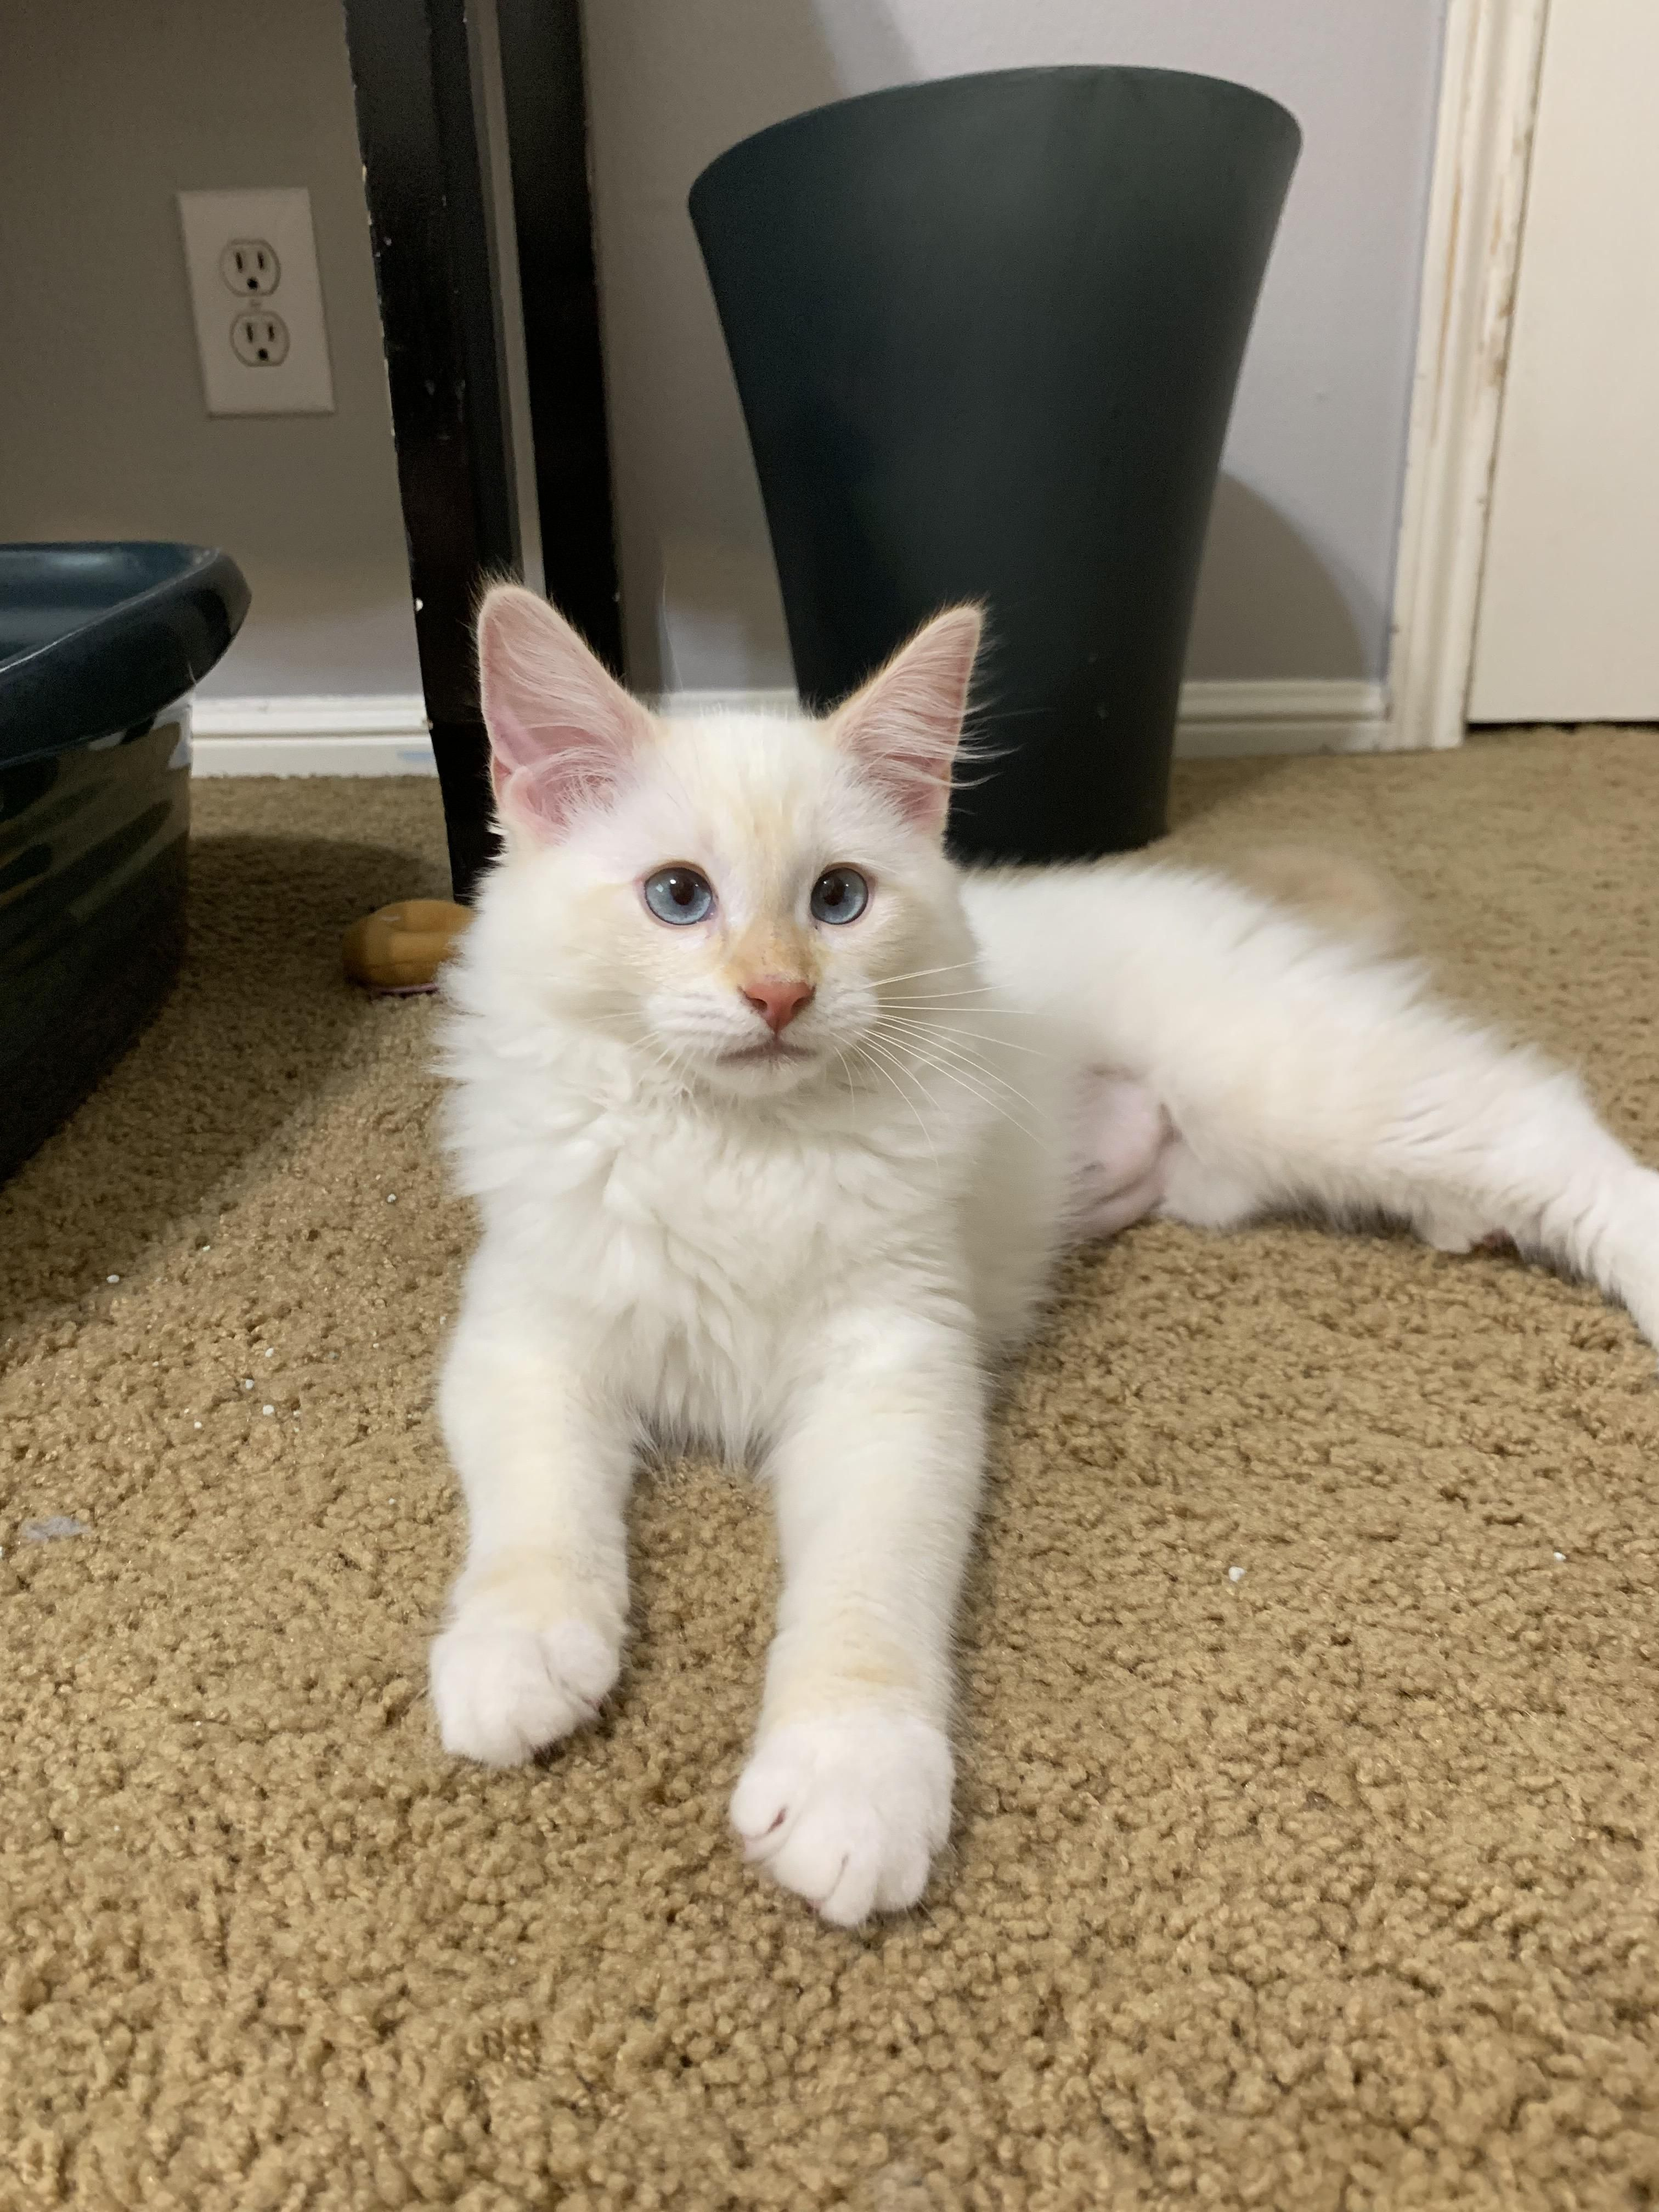 I finally got my first kitten today and I couldnt be